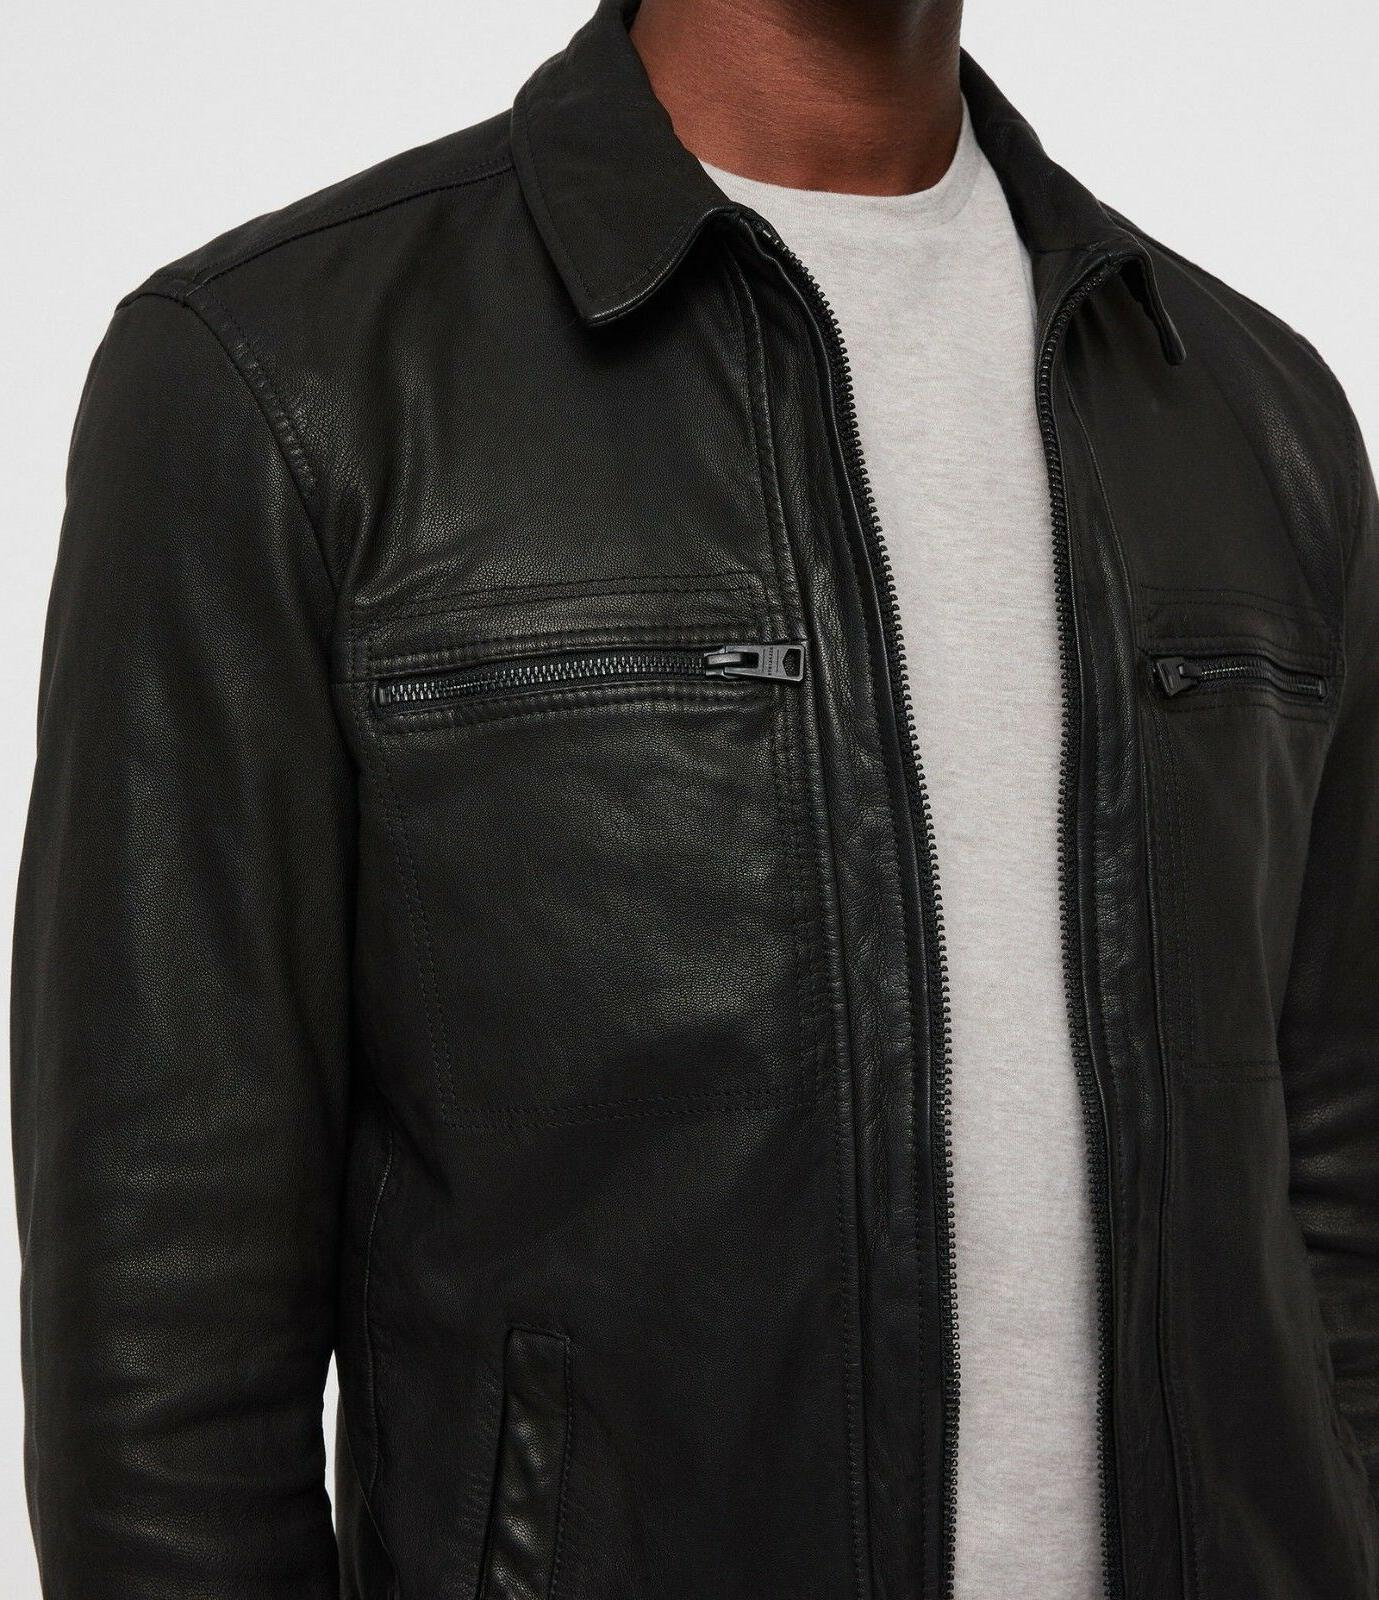 BNWT £318 All Lark Leather Worldwide Shipping Delivery